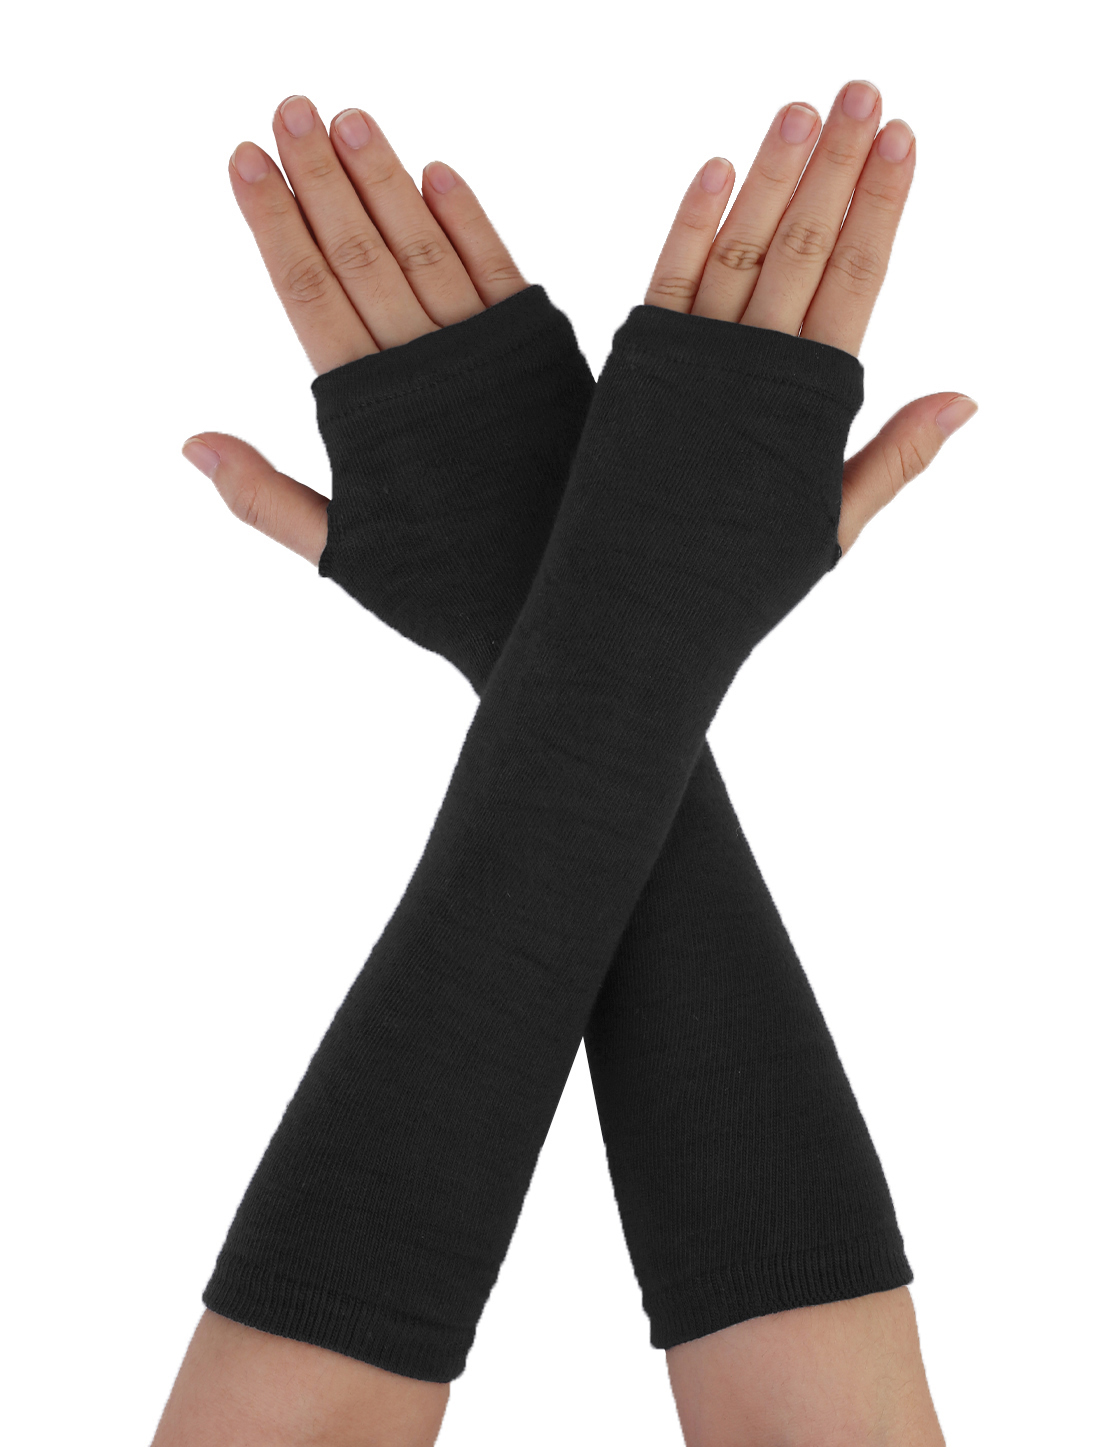 Pair Wedding Arm Warmmers Long Thumb Hole Fingerless Gloves Black for Ladies